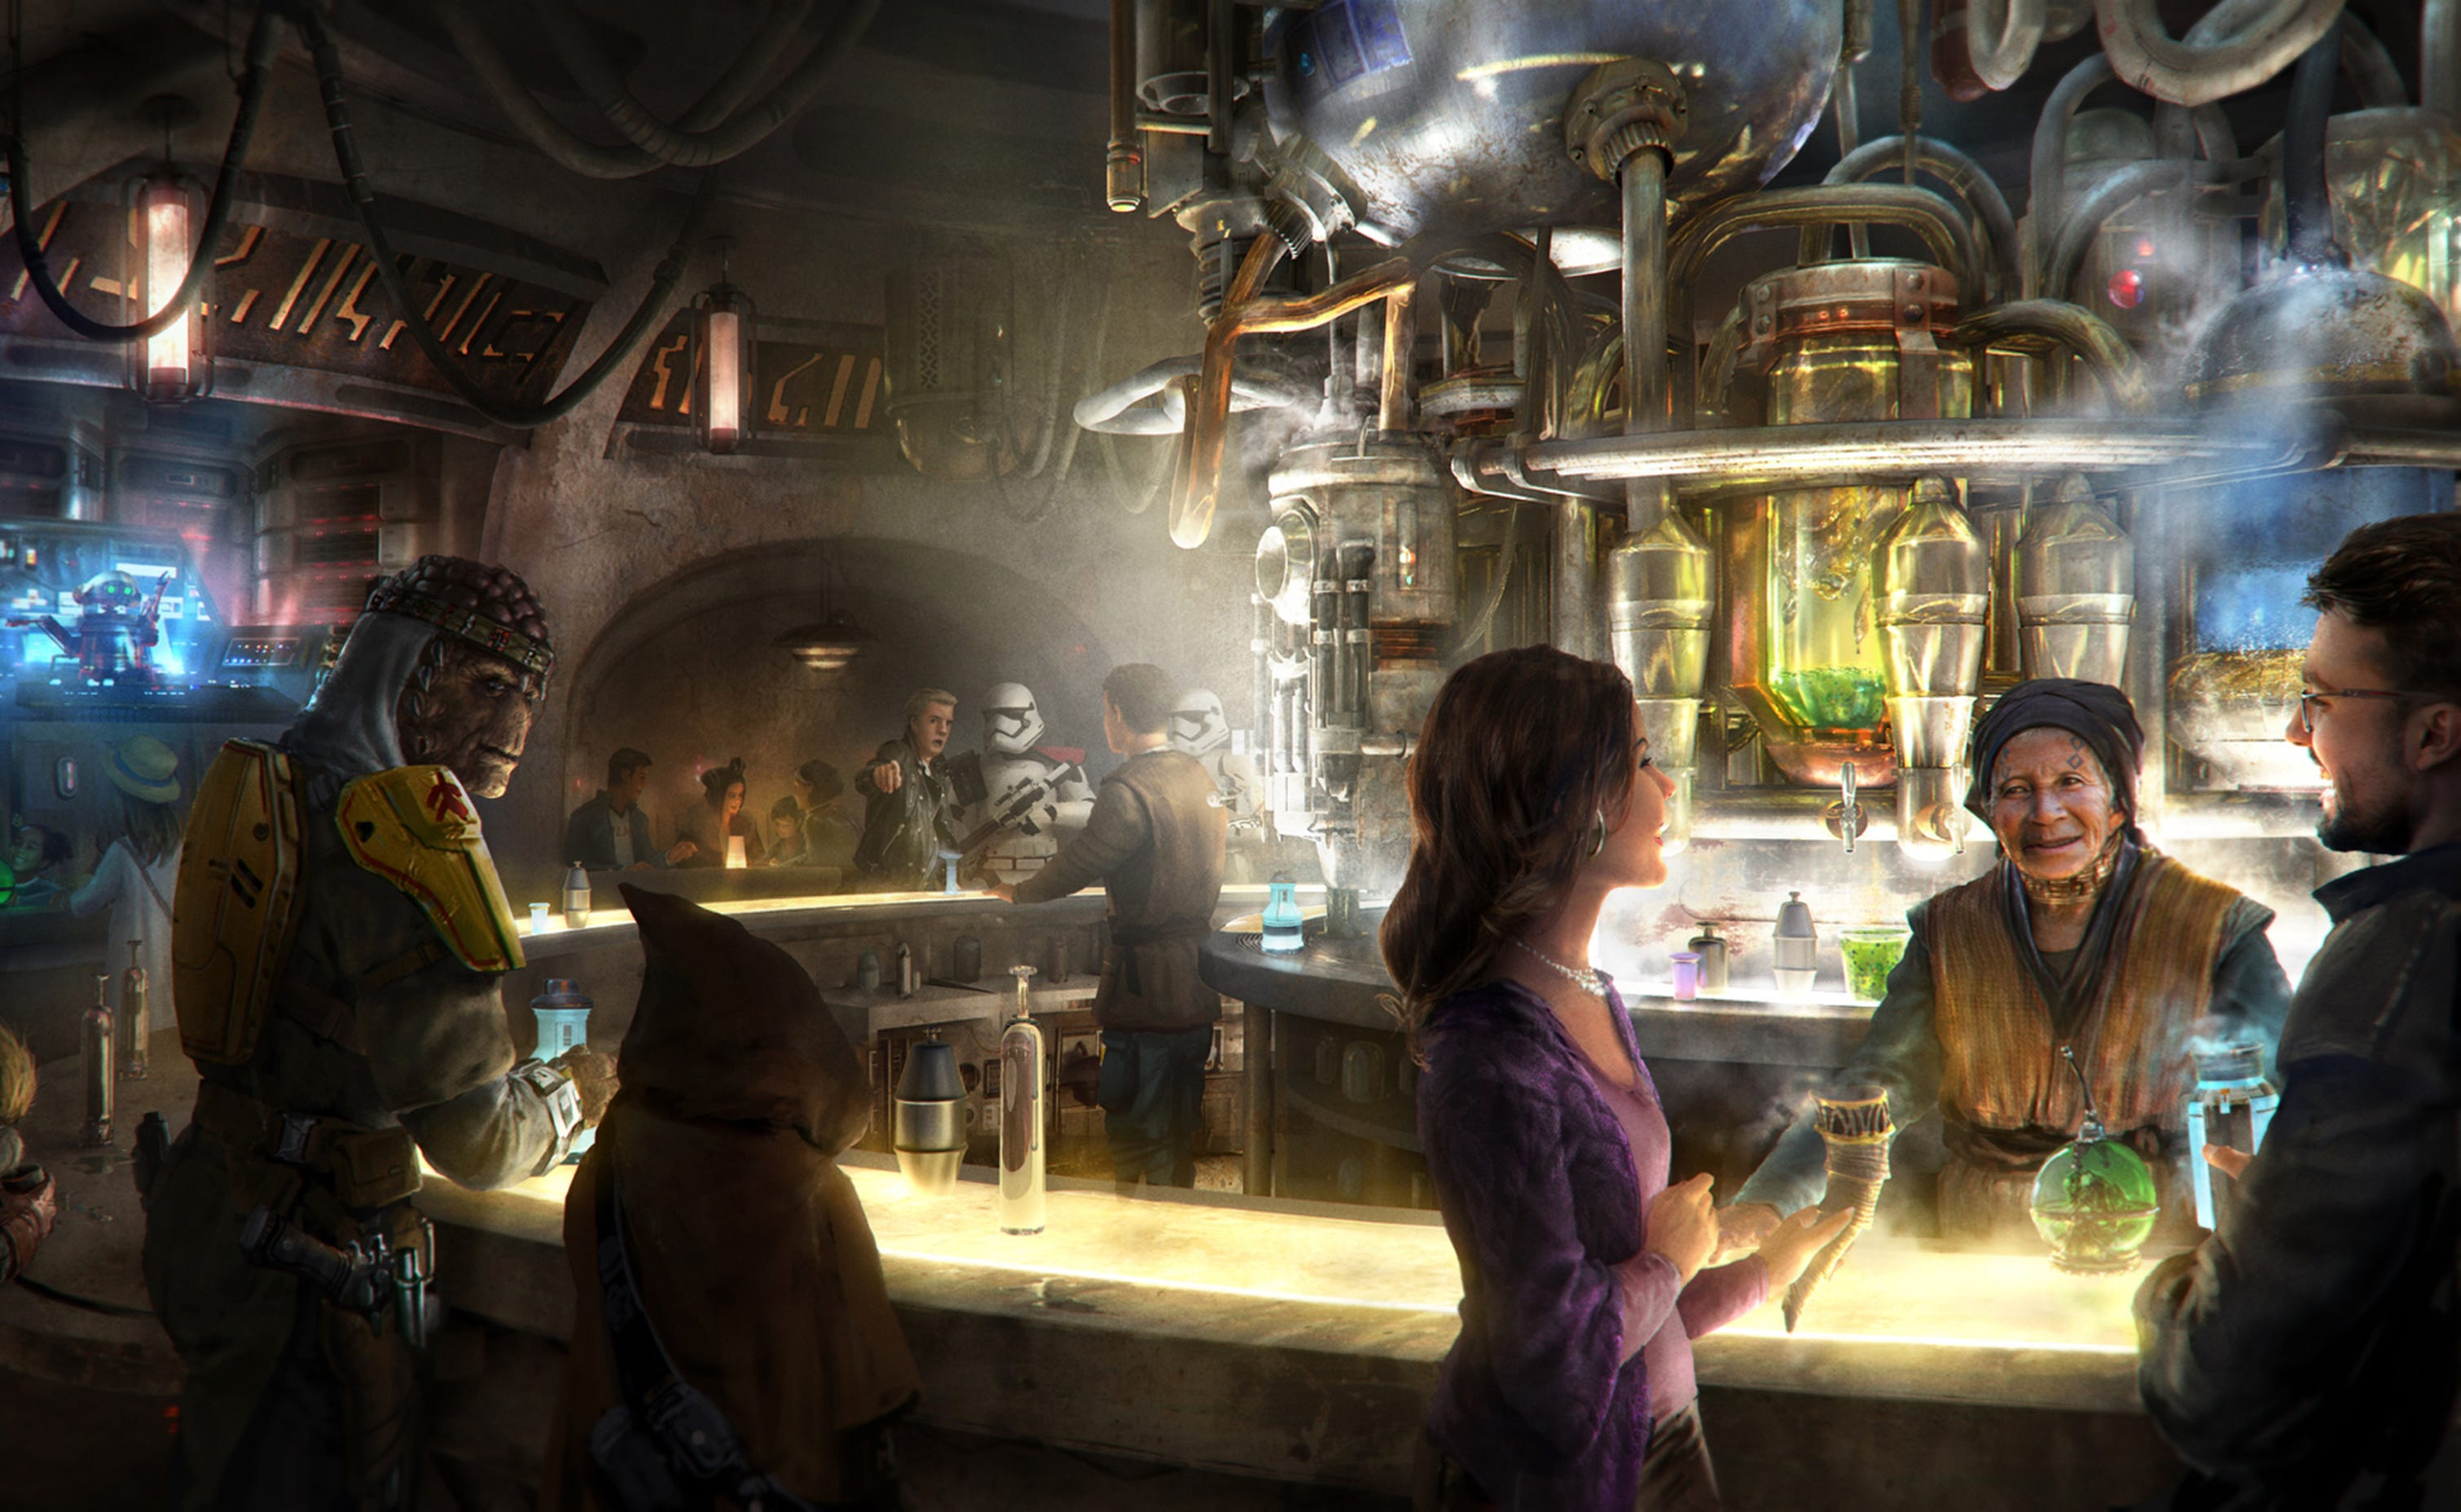 Some of the beverages at Oga's Cantina will include alcohol, which will break a longstanding Disneyland tradition.